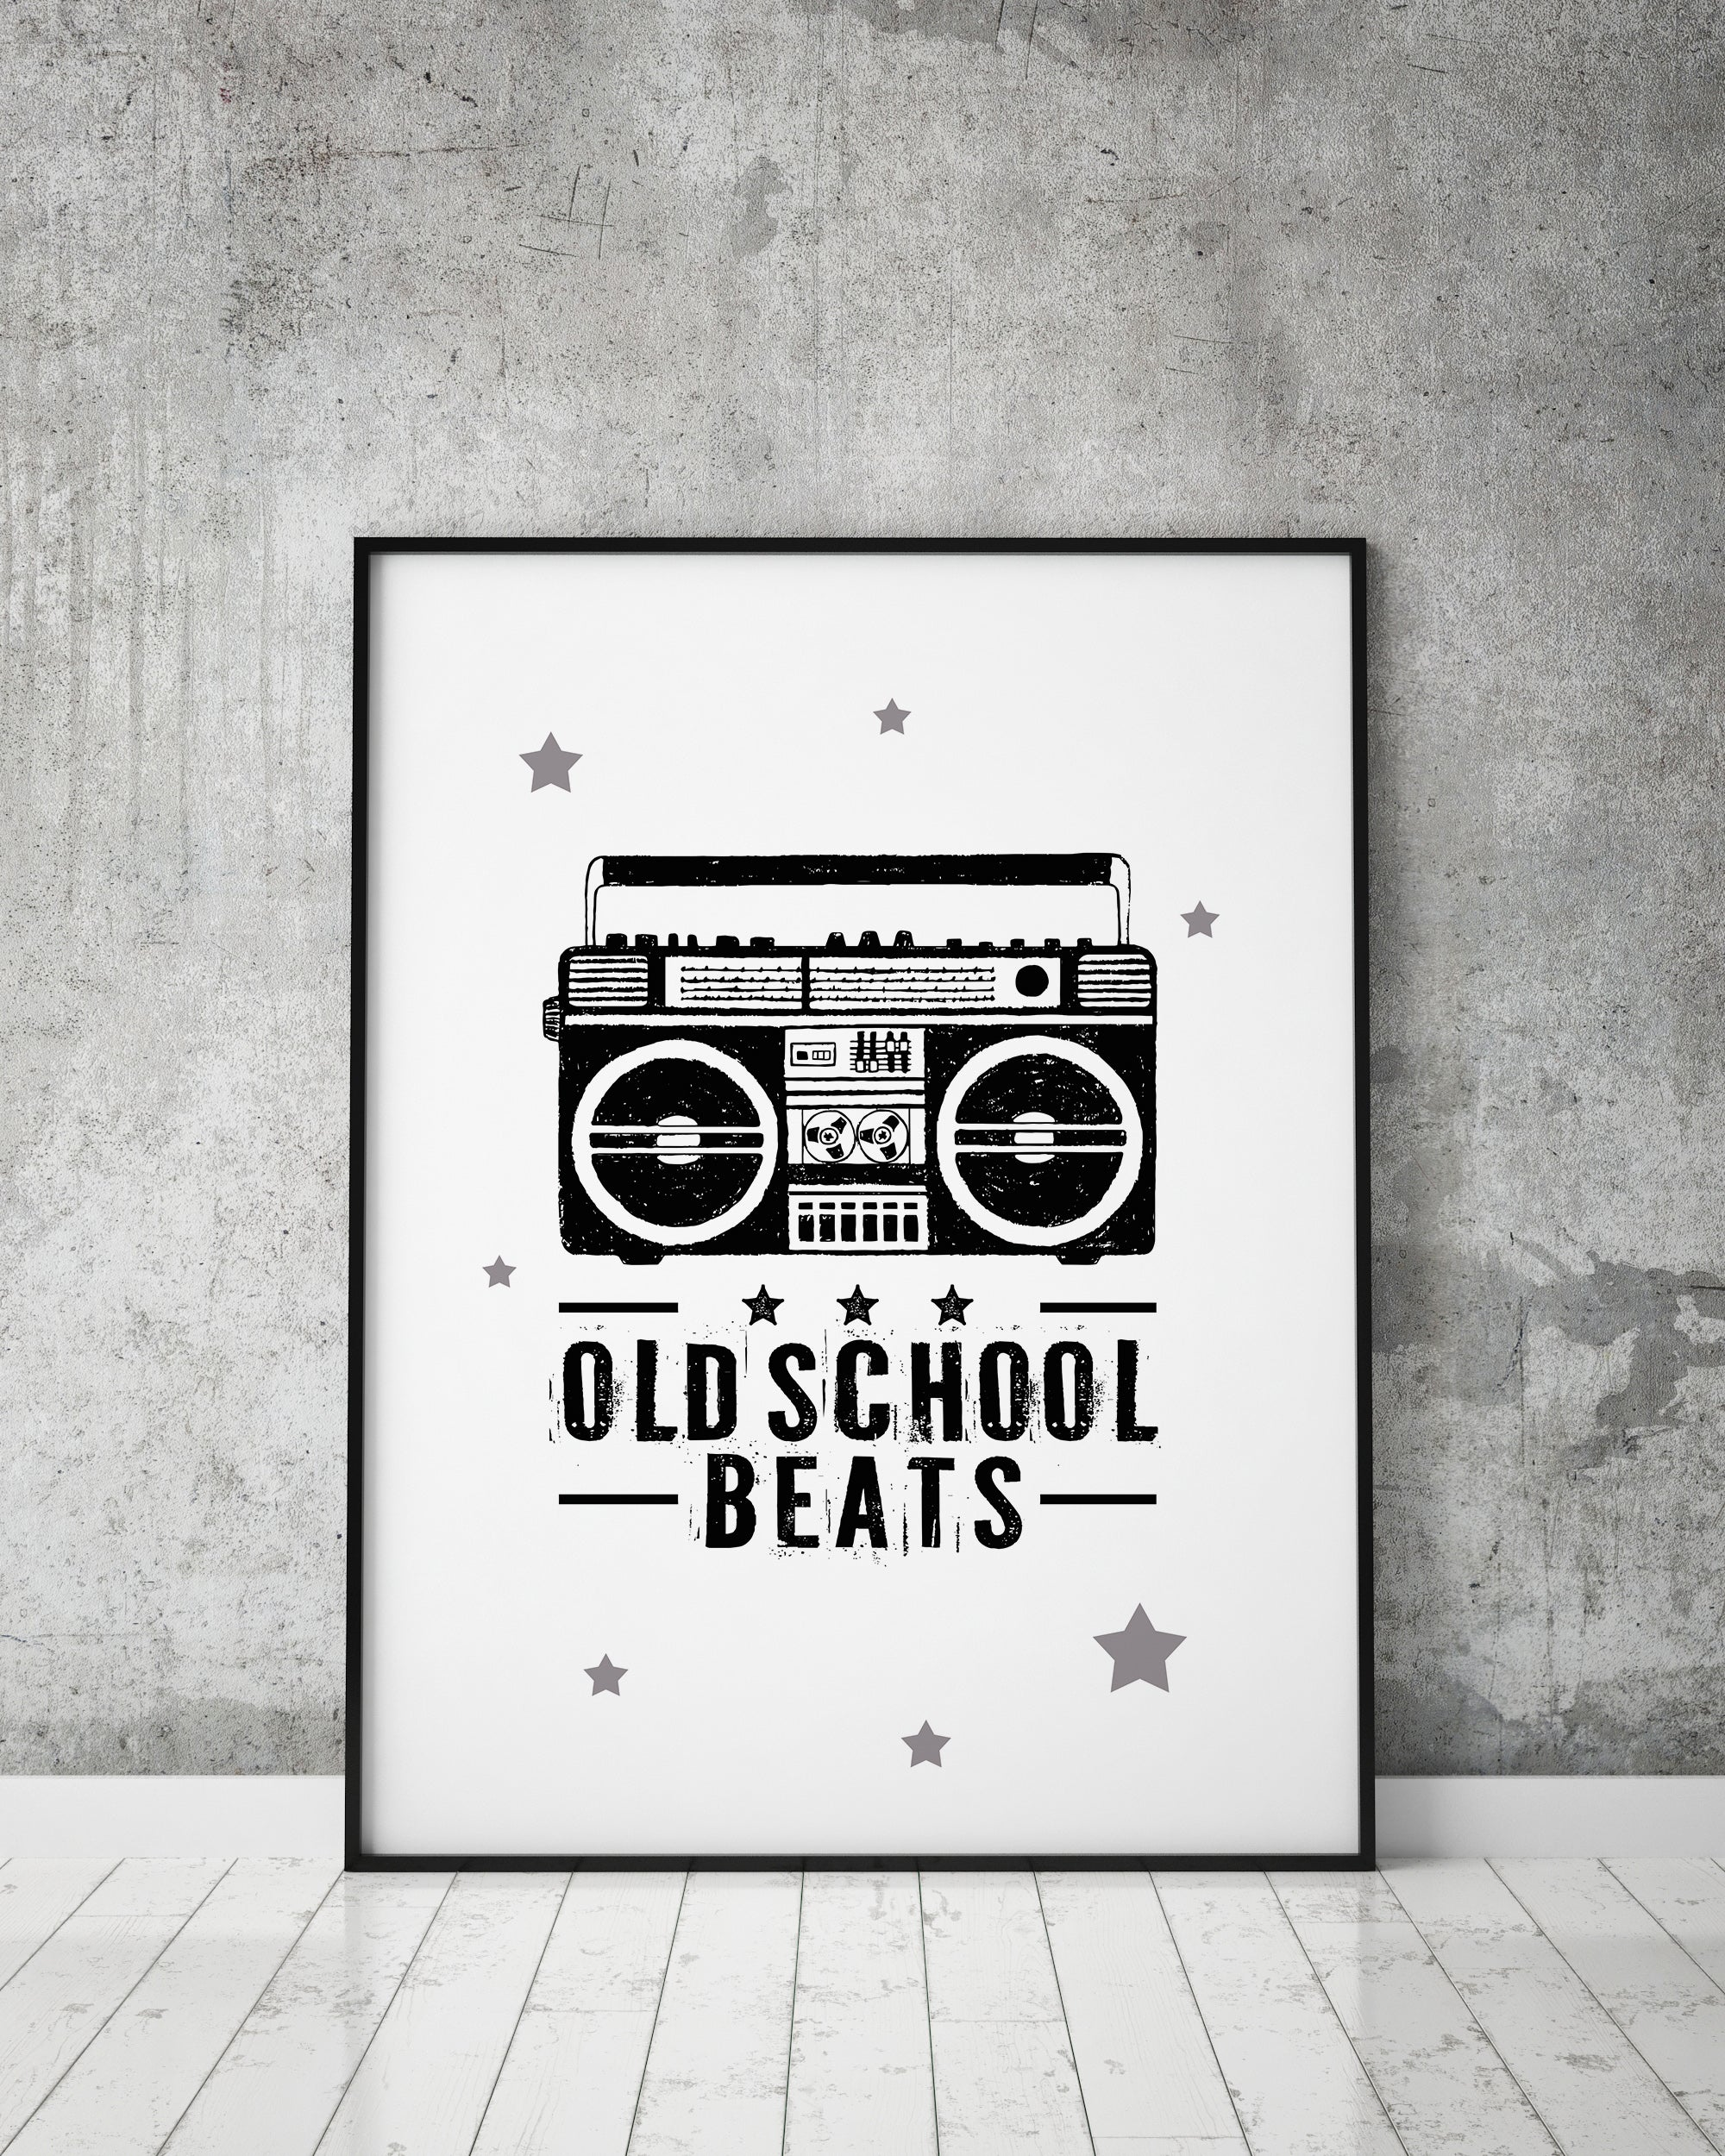 Old school beats